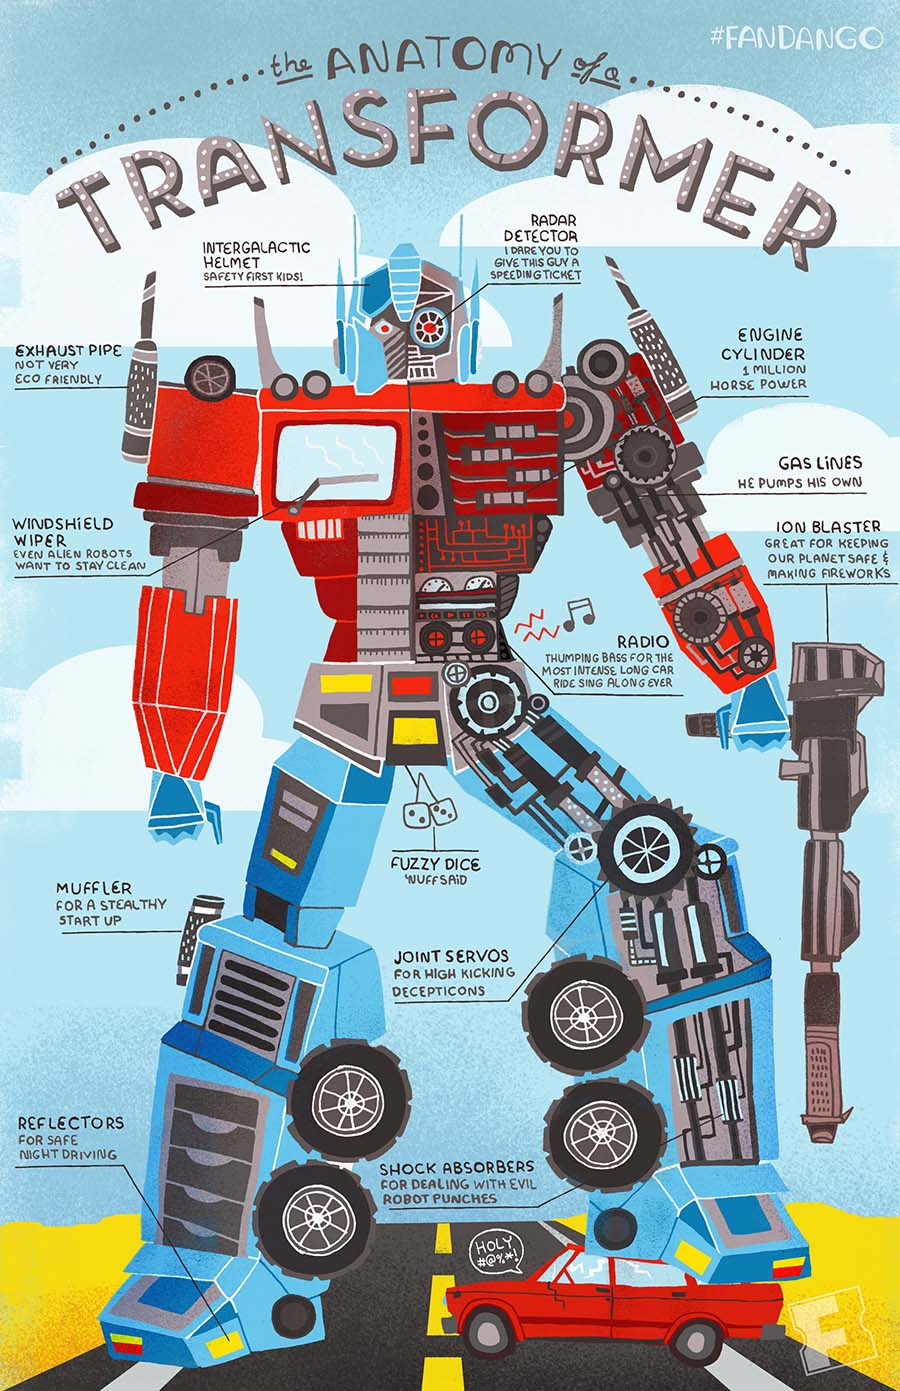 Infographic: The Anatomy of a Transformer | Fandango